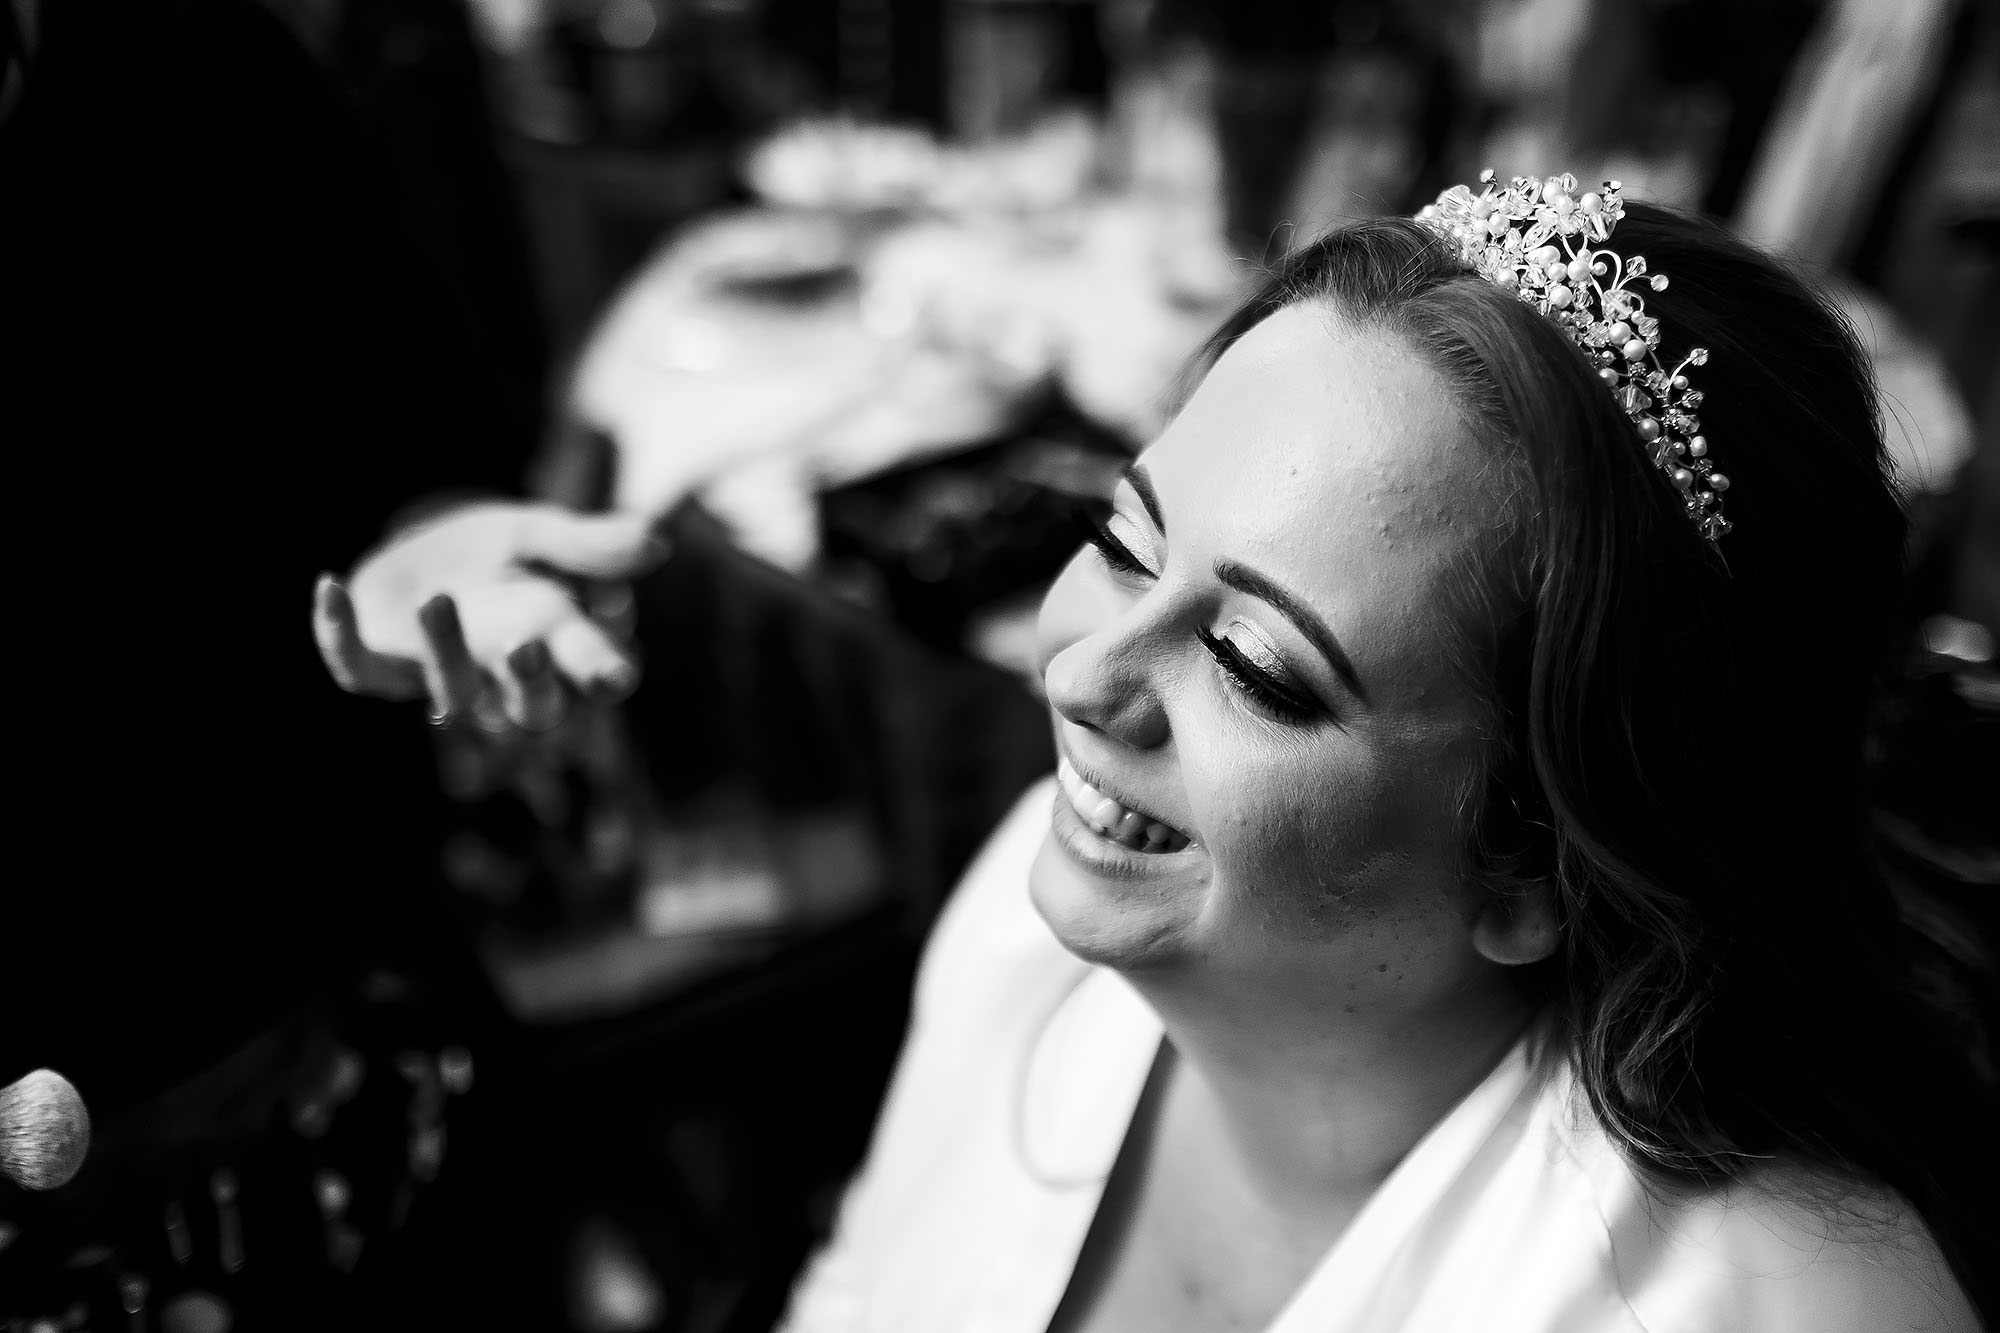 Bride wearing long eyelashes and hairpiece having make up applied on wedding morning | Wellbeing Farm wedding photographs by Toni Darcy Photography